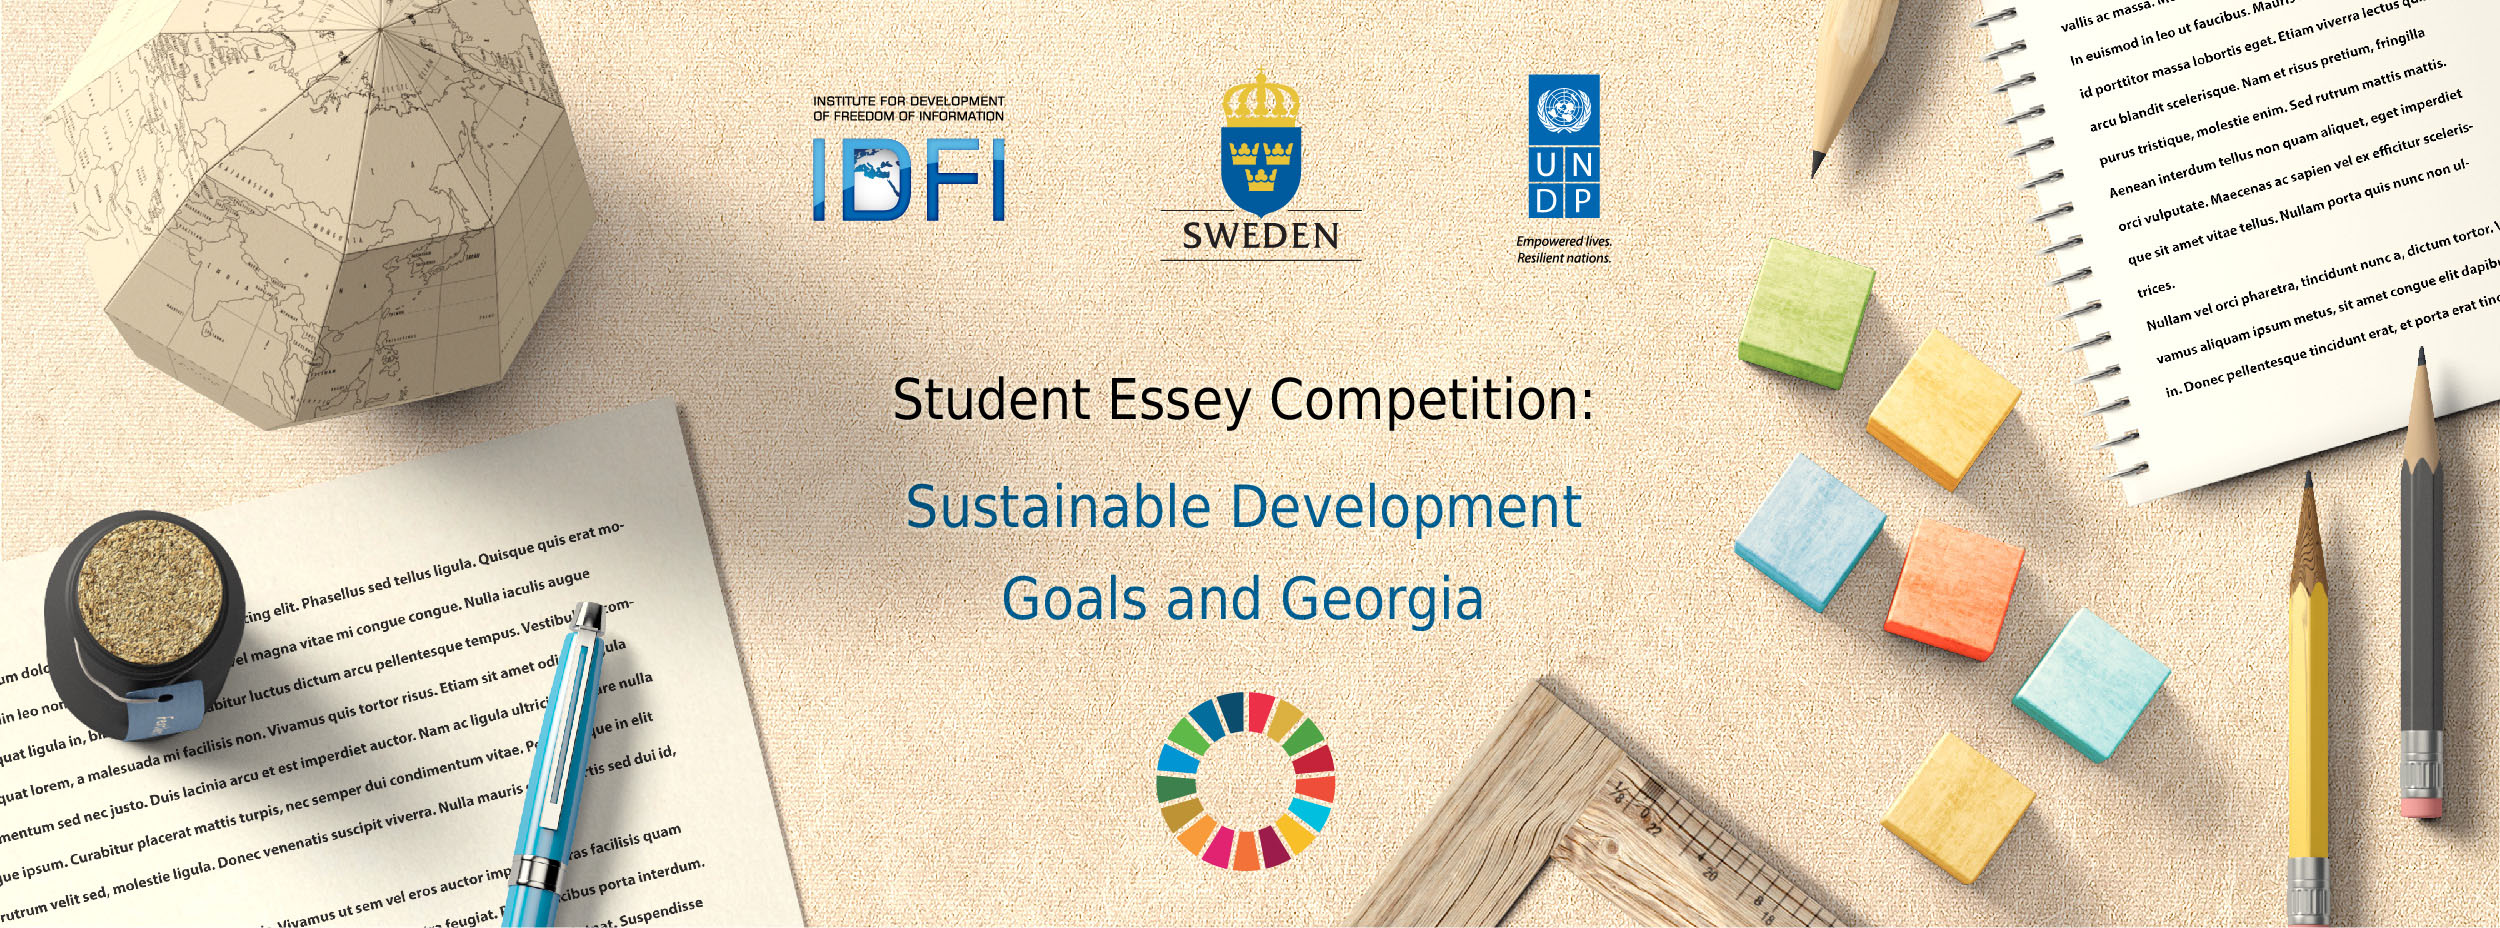 recommended policies to achieve a sustainable society essay Make sure your big purchases have big environmental benefits  shop  conscientiously and look for products made from sustainable materials like  bamboo  urge your representatives to pass stronger policies to limit  greenhouse gases, fight.